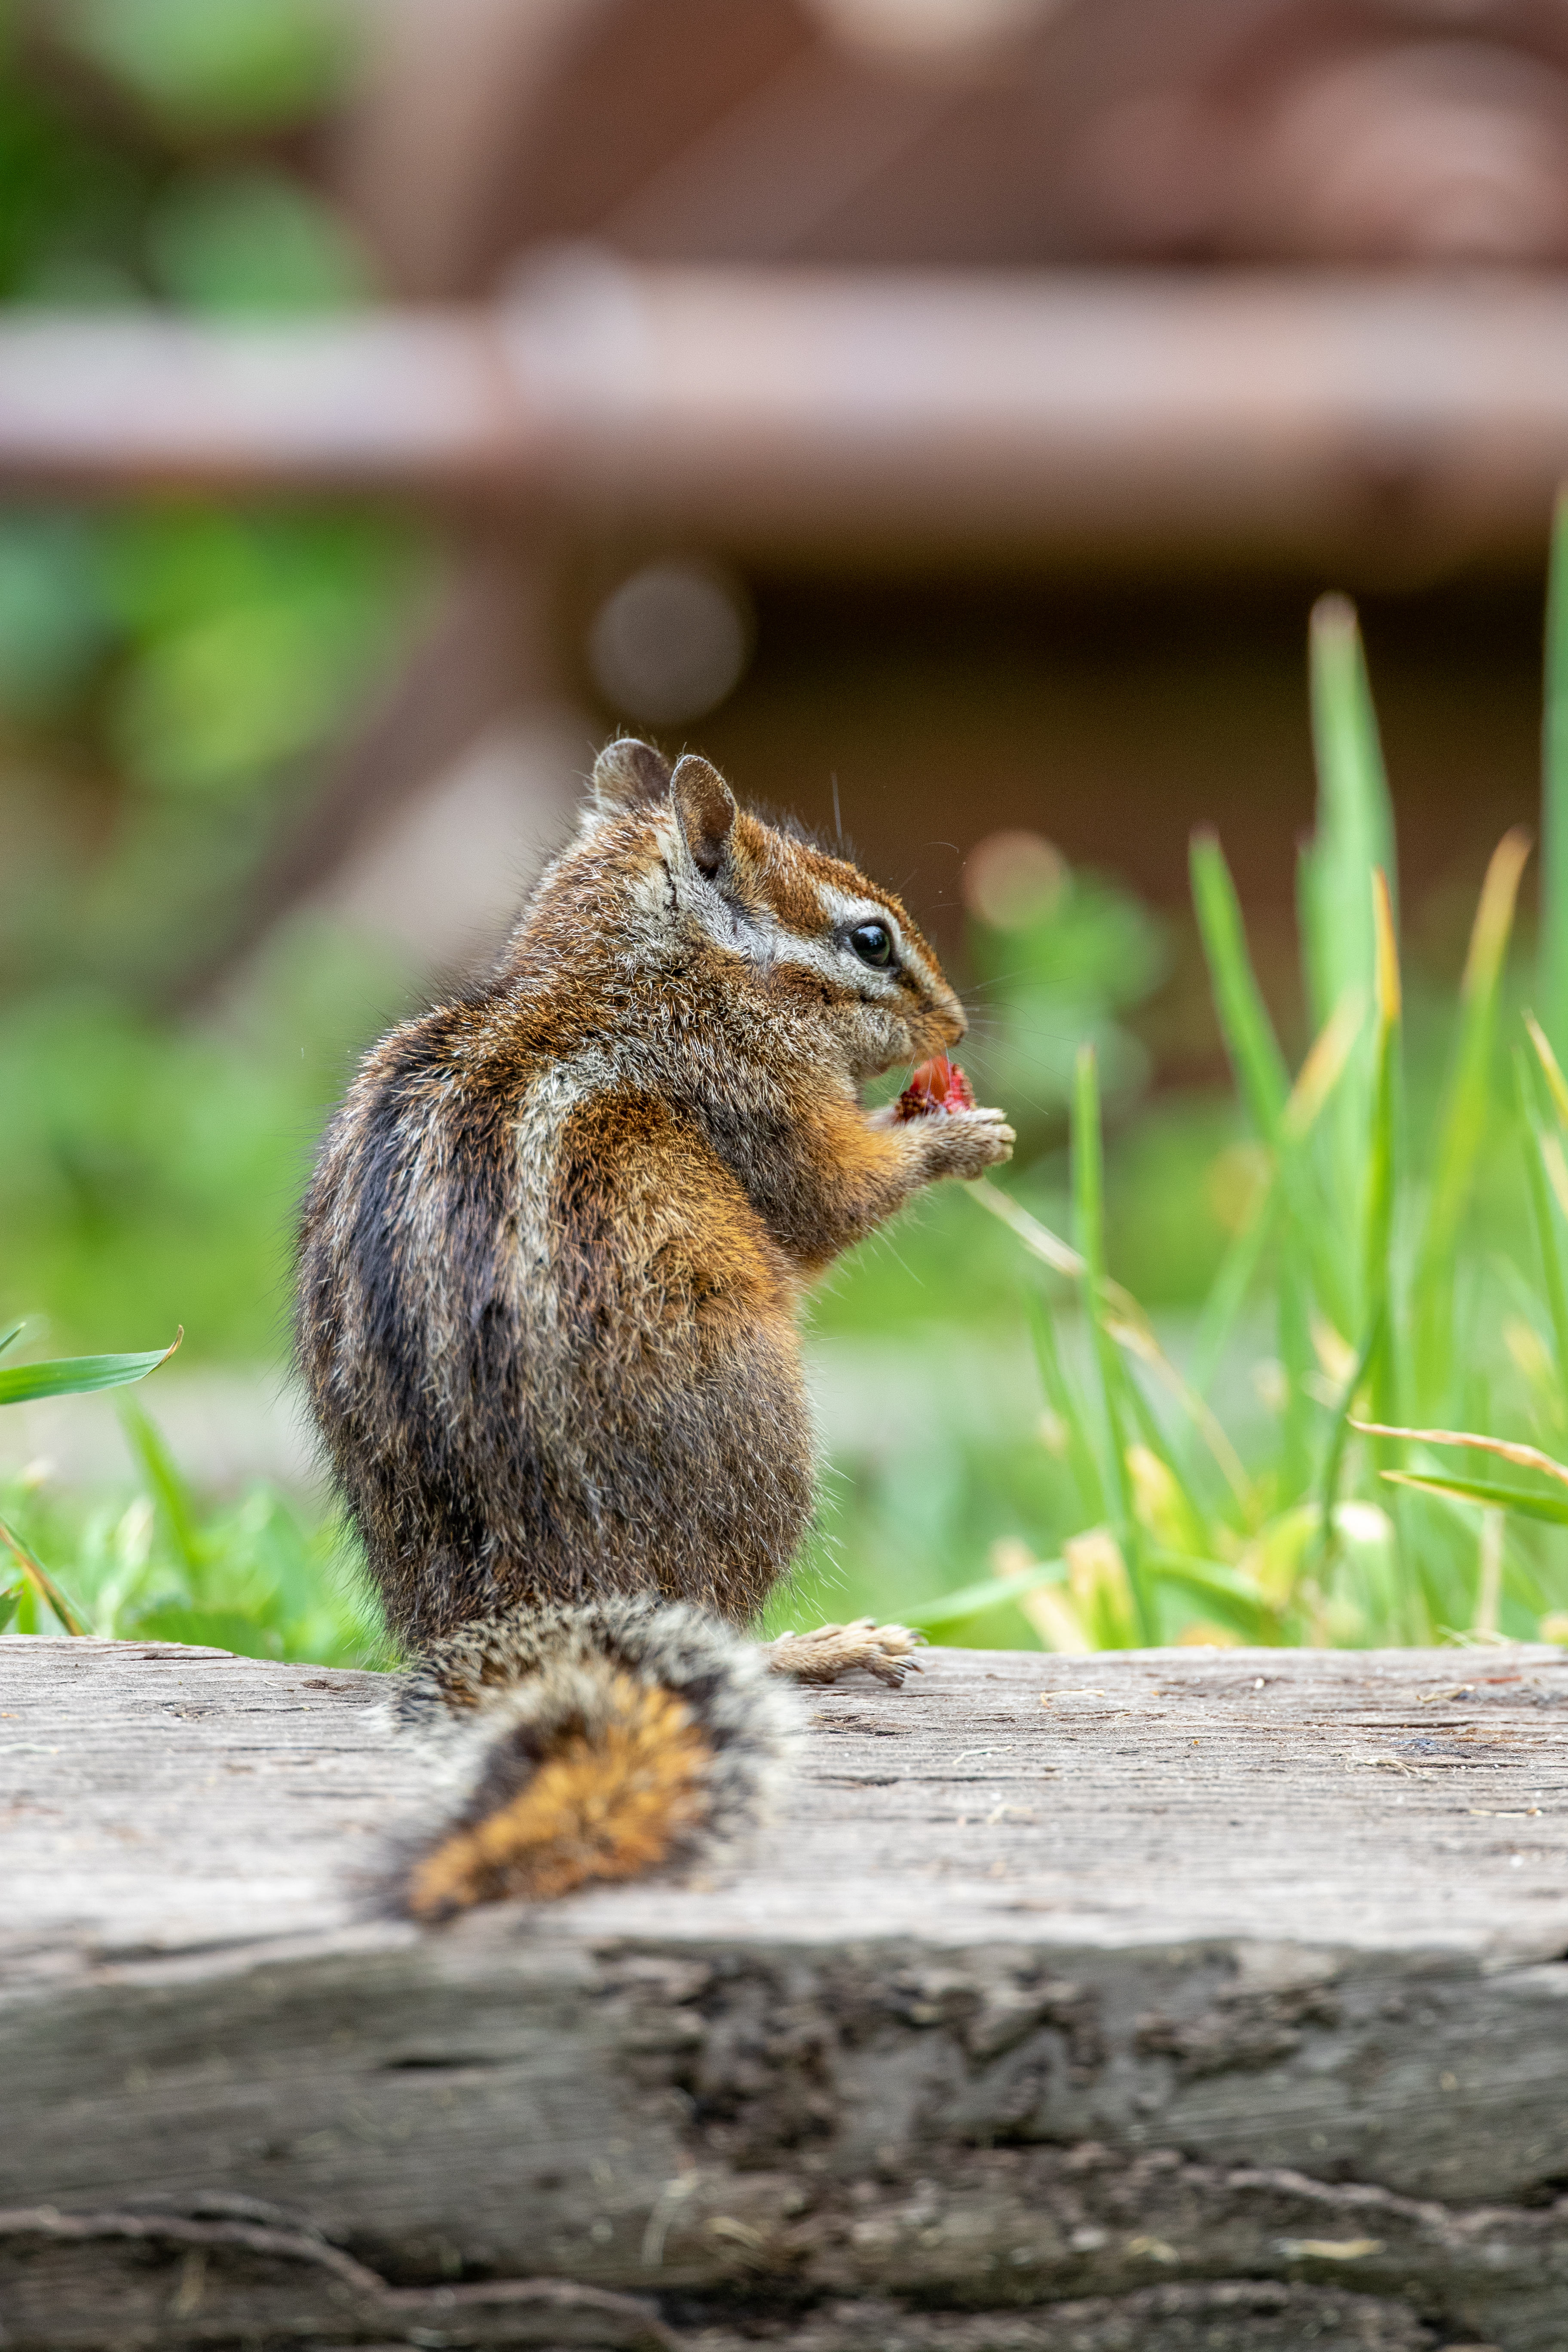 124338 download wallpaper Animals, Chipmunk, Animal, Nice, Sweetheart, Wildlife screensavers and pictures for free